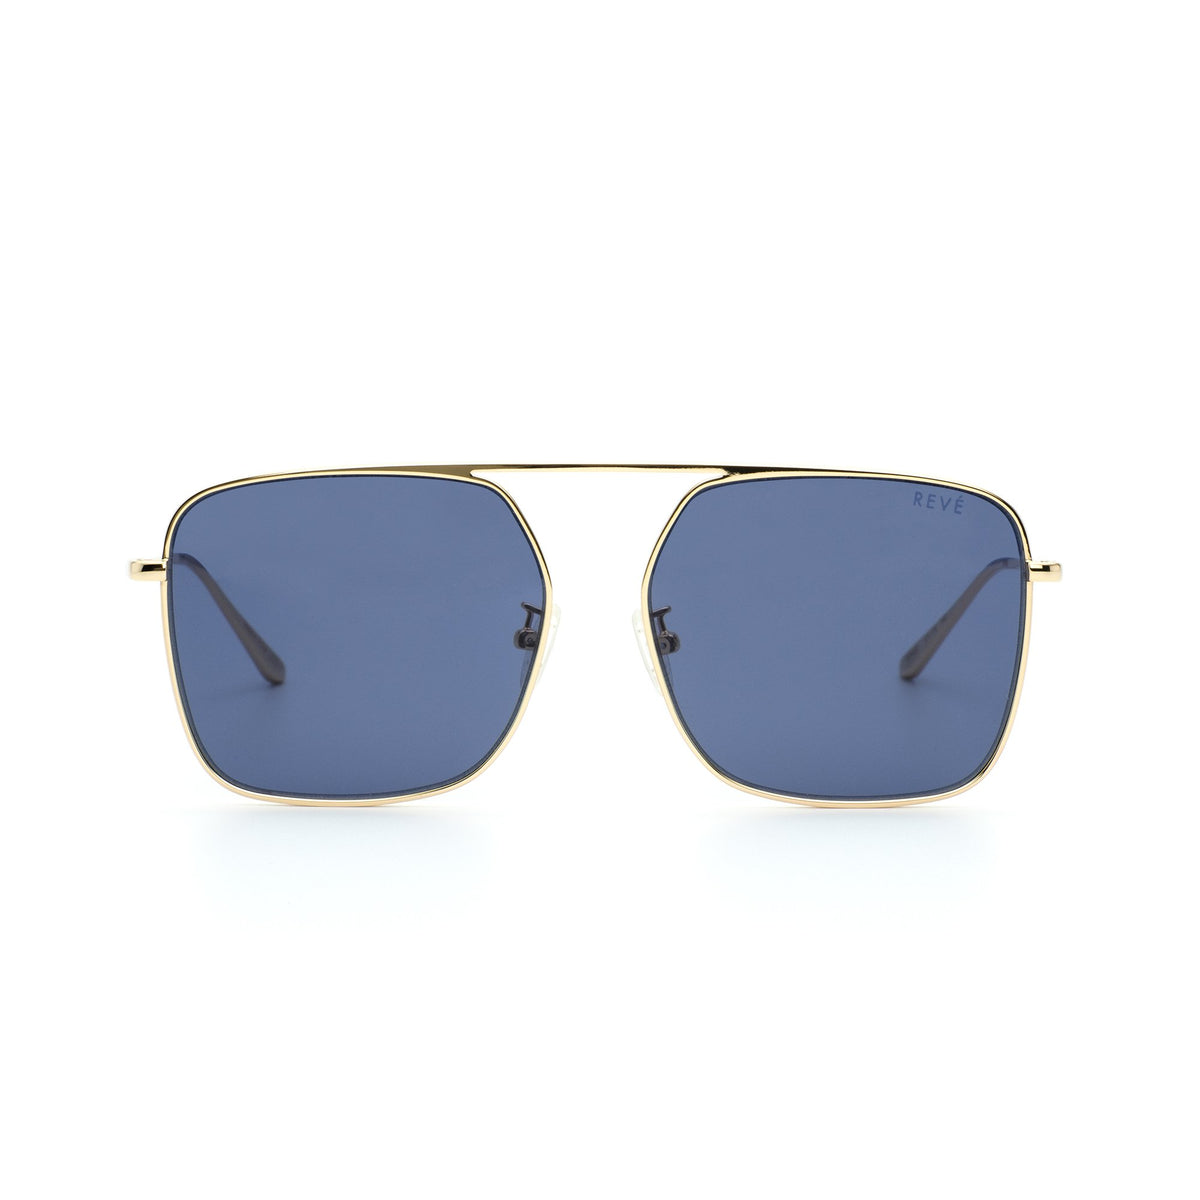 BPM | Navy Blue Square framed sunglasses